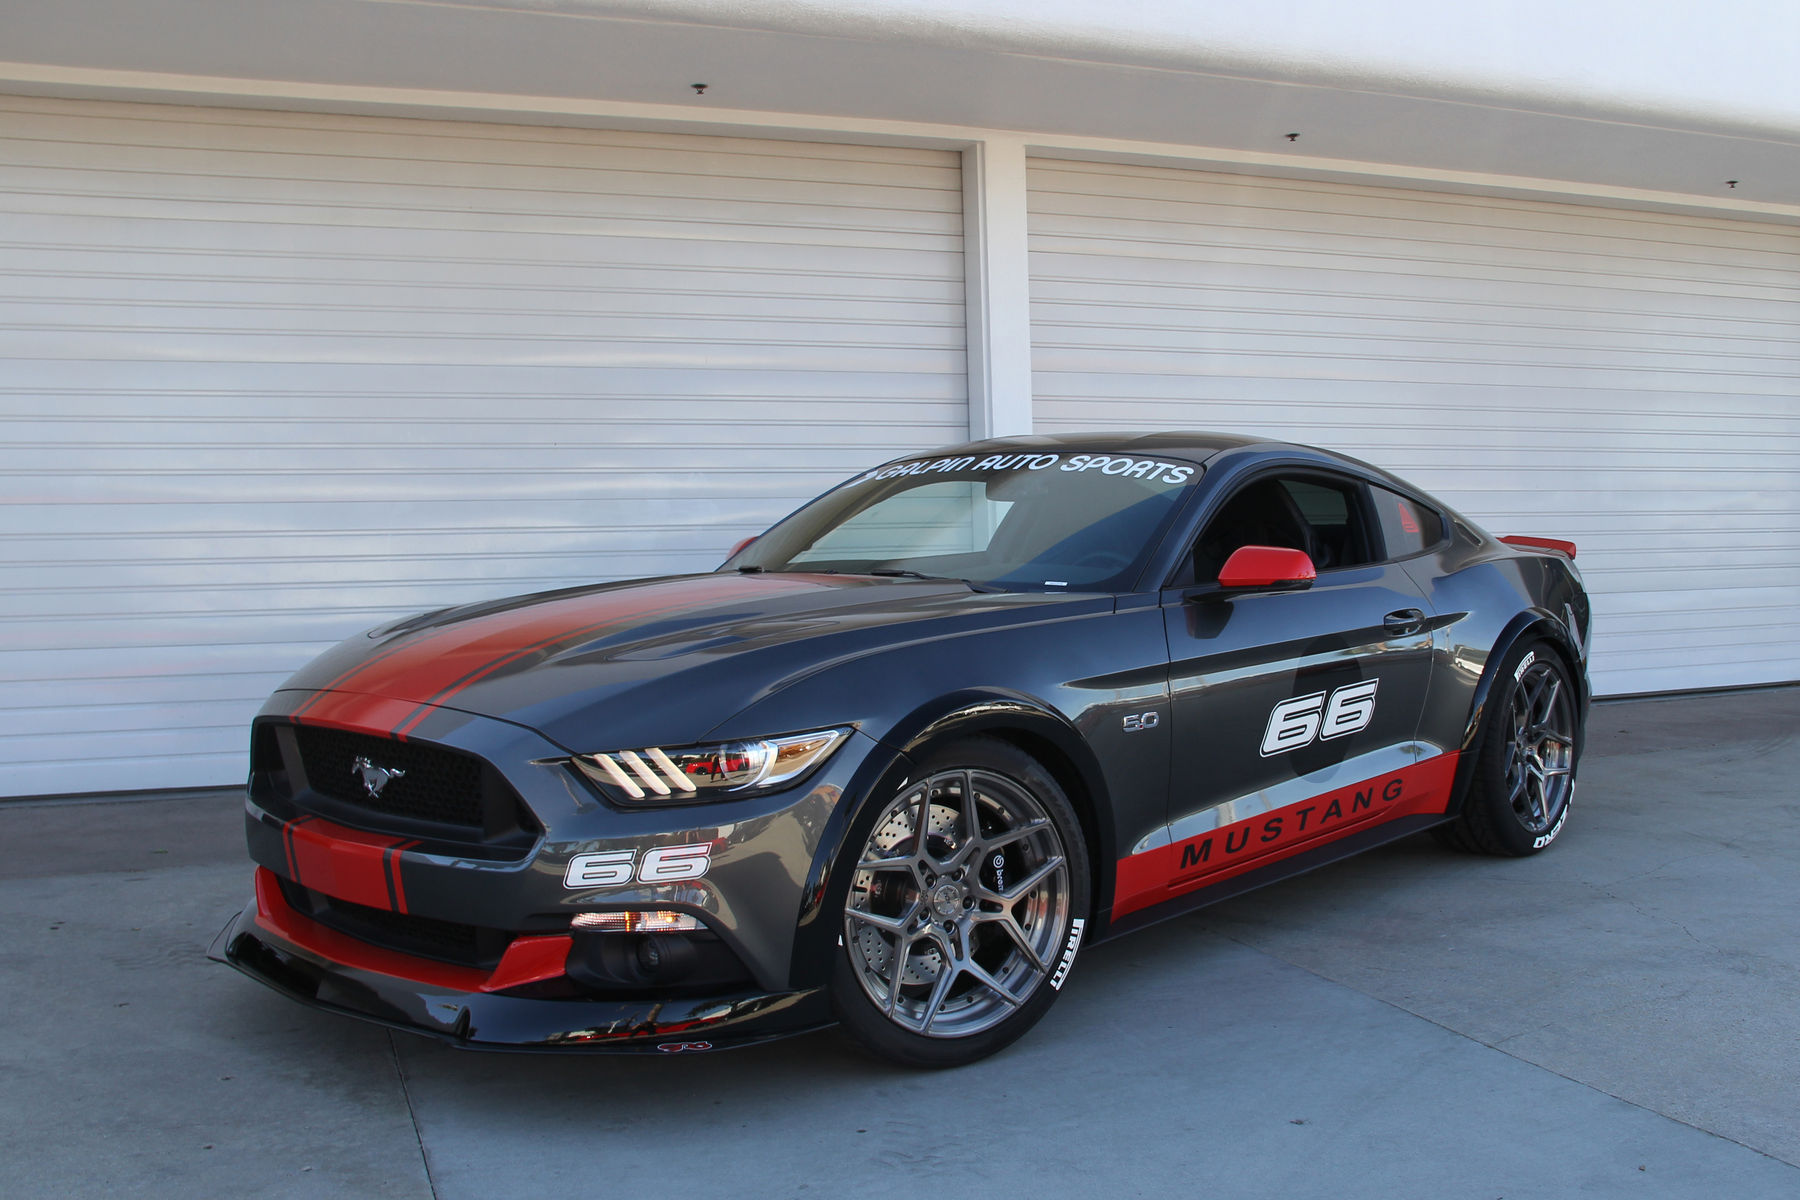 2016 Ford Mustang | 2016 Ford Mustang GT 5.0